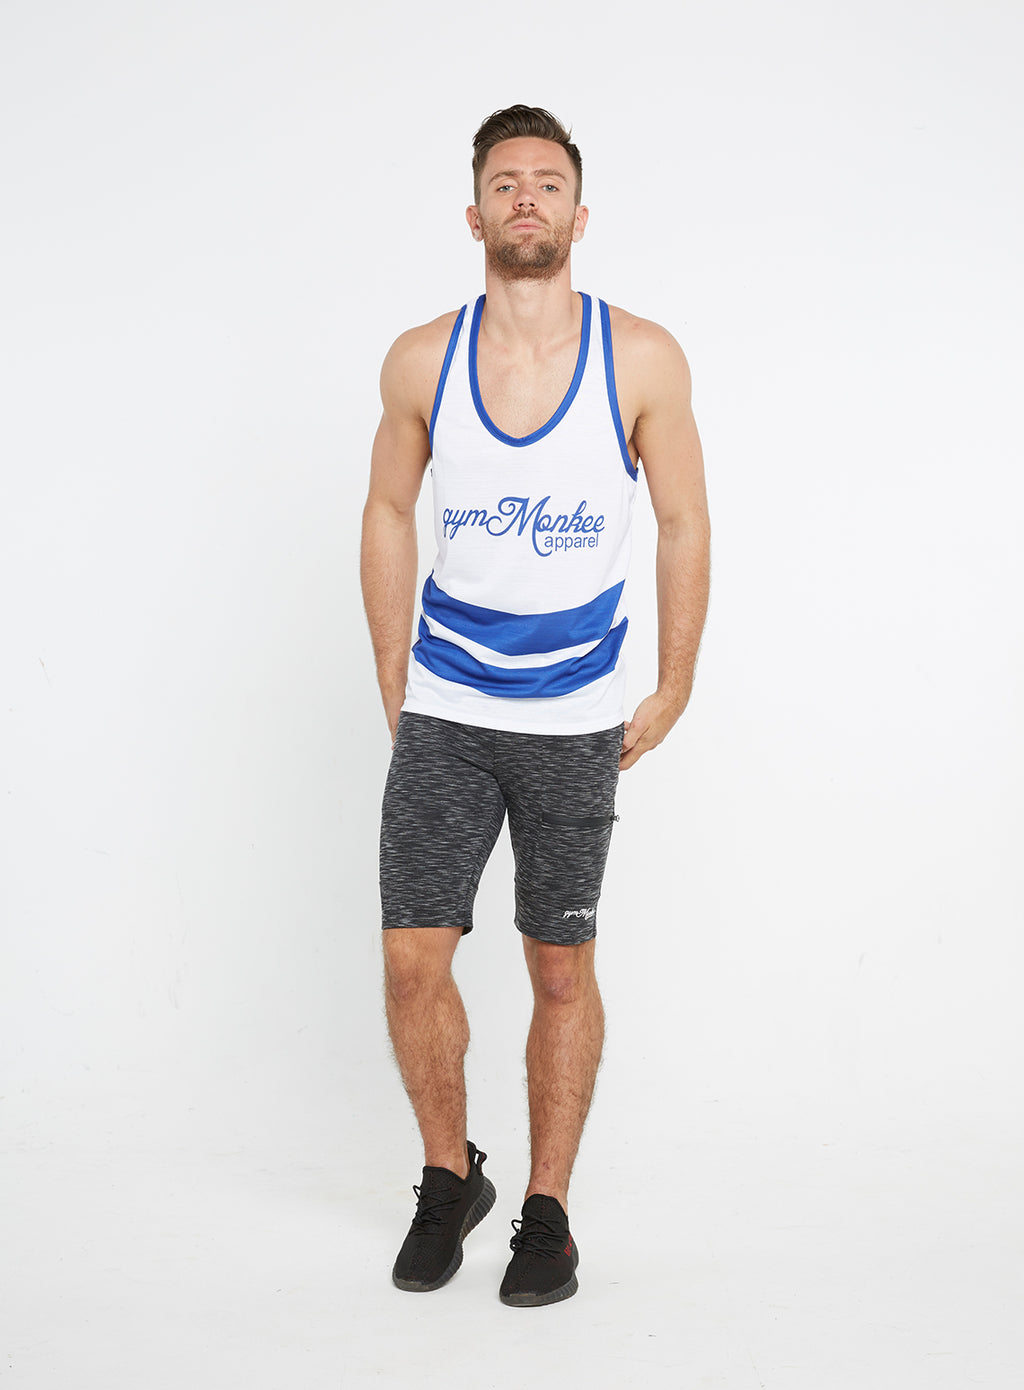 Gym Monkee - Blue and White Sublimated Vest MOVING